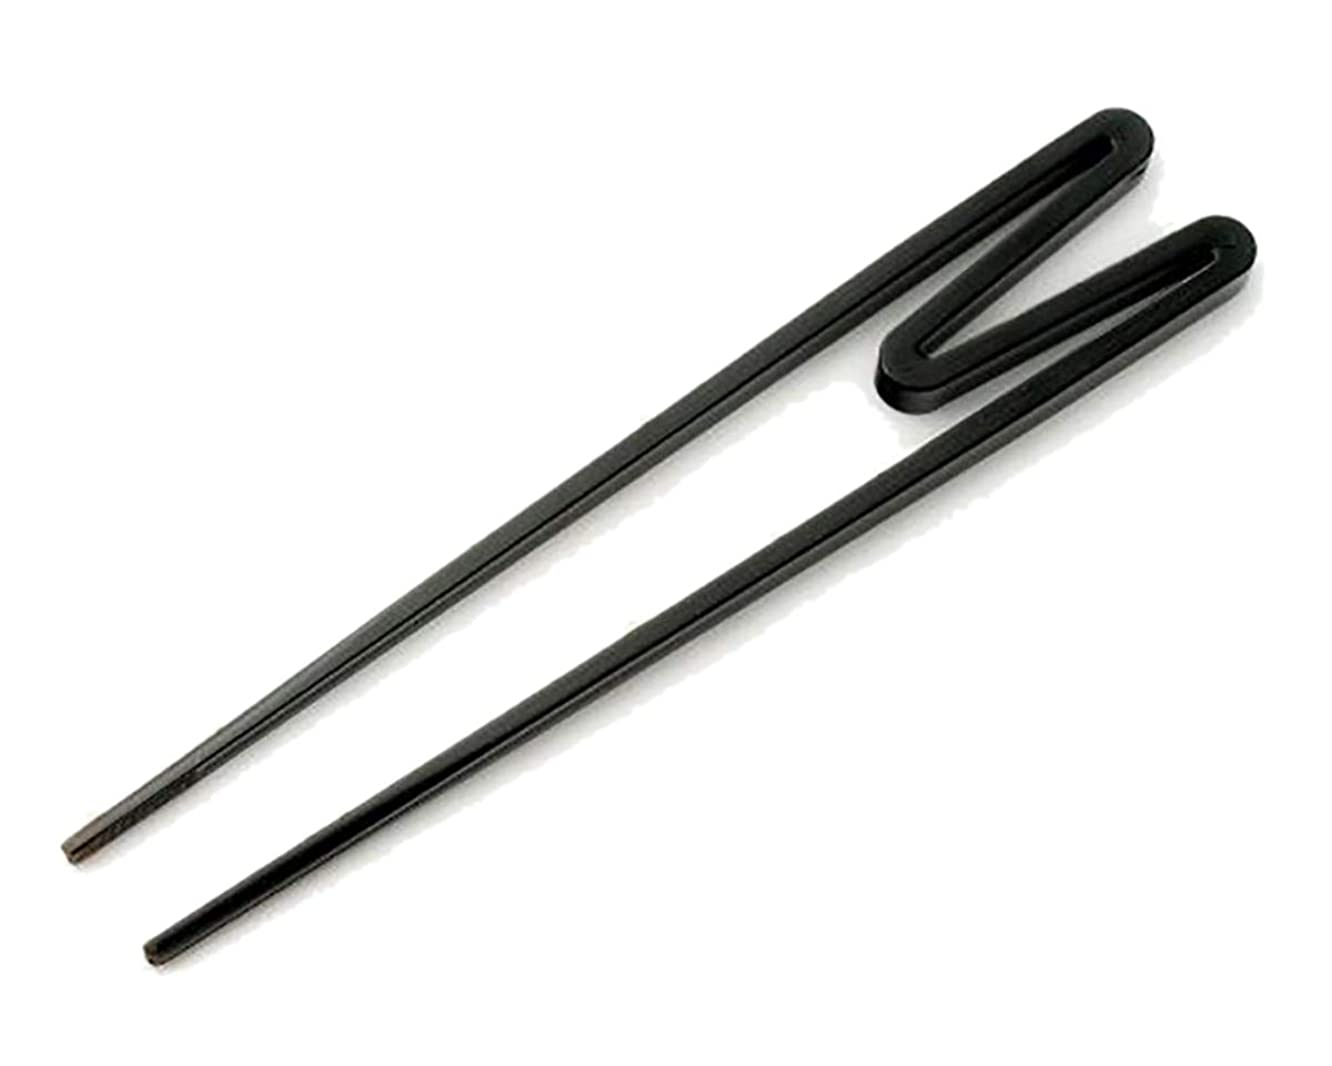 Reusable Black Plastic Training Chopsticks for Kids, 9 Inches